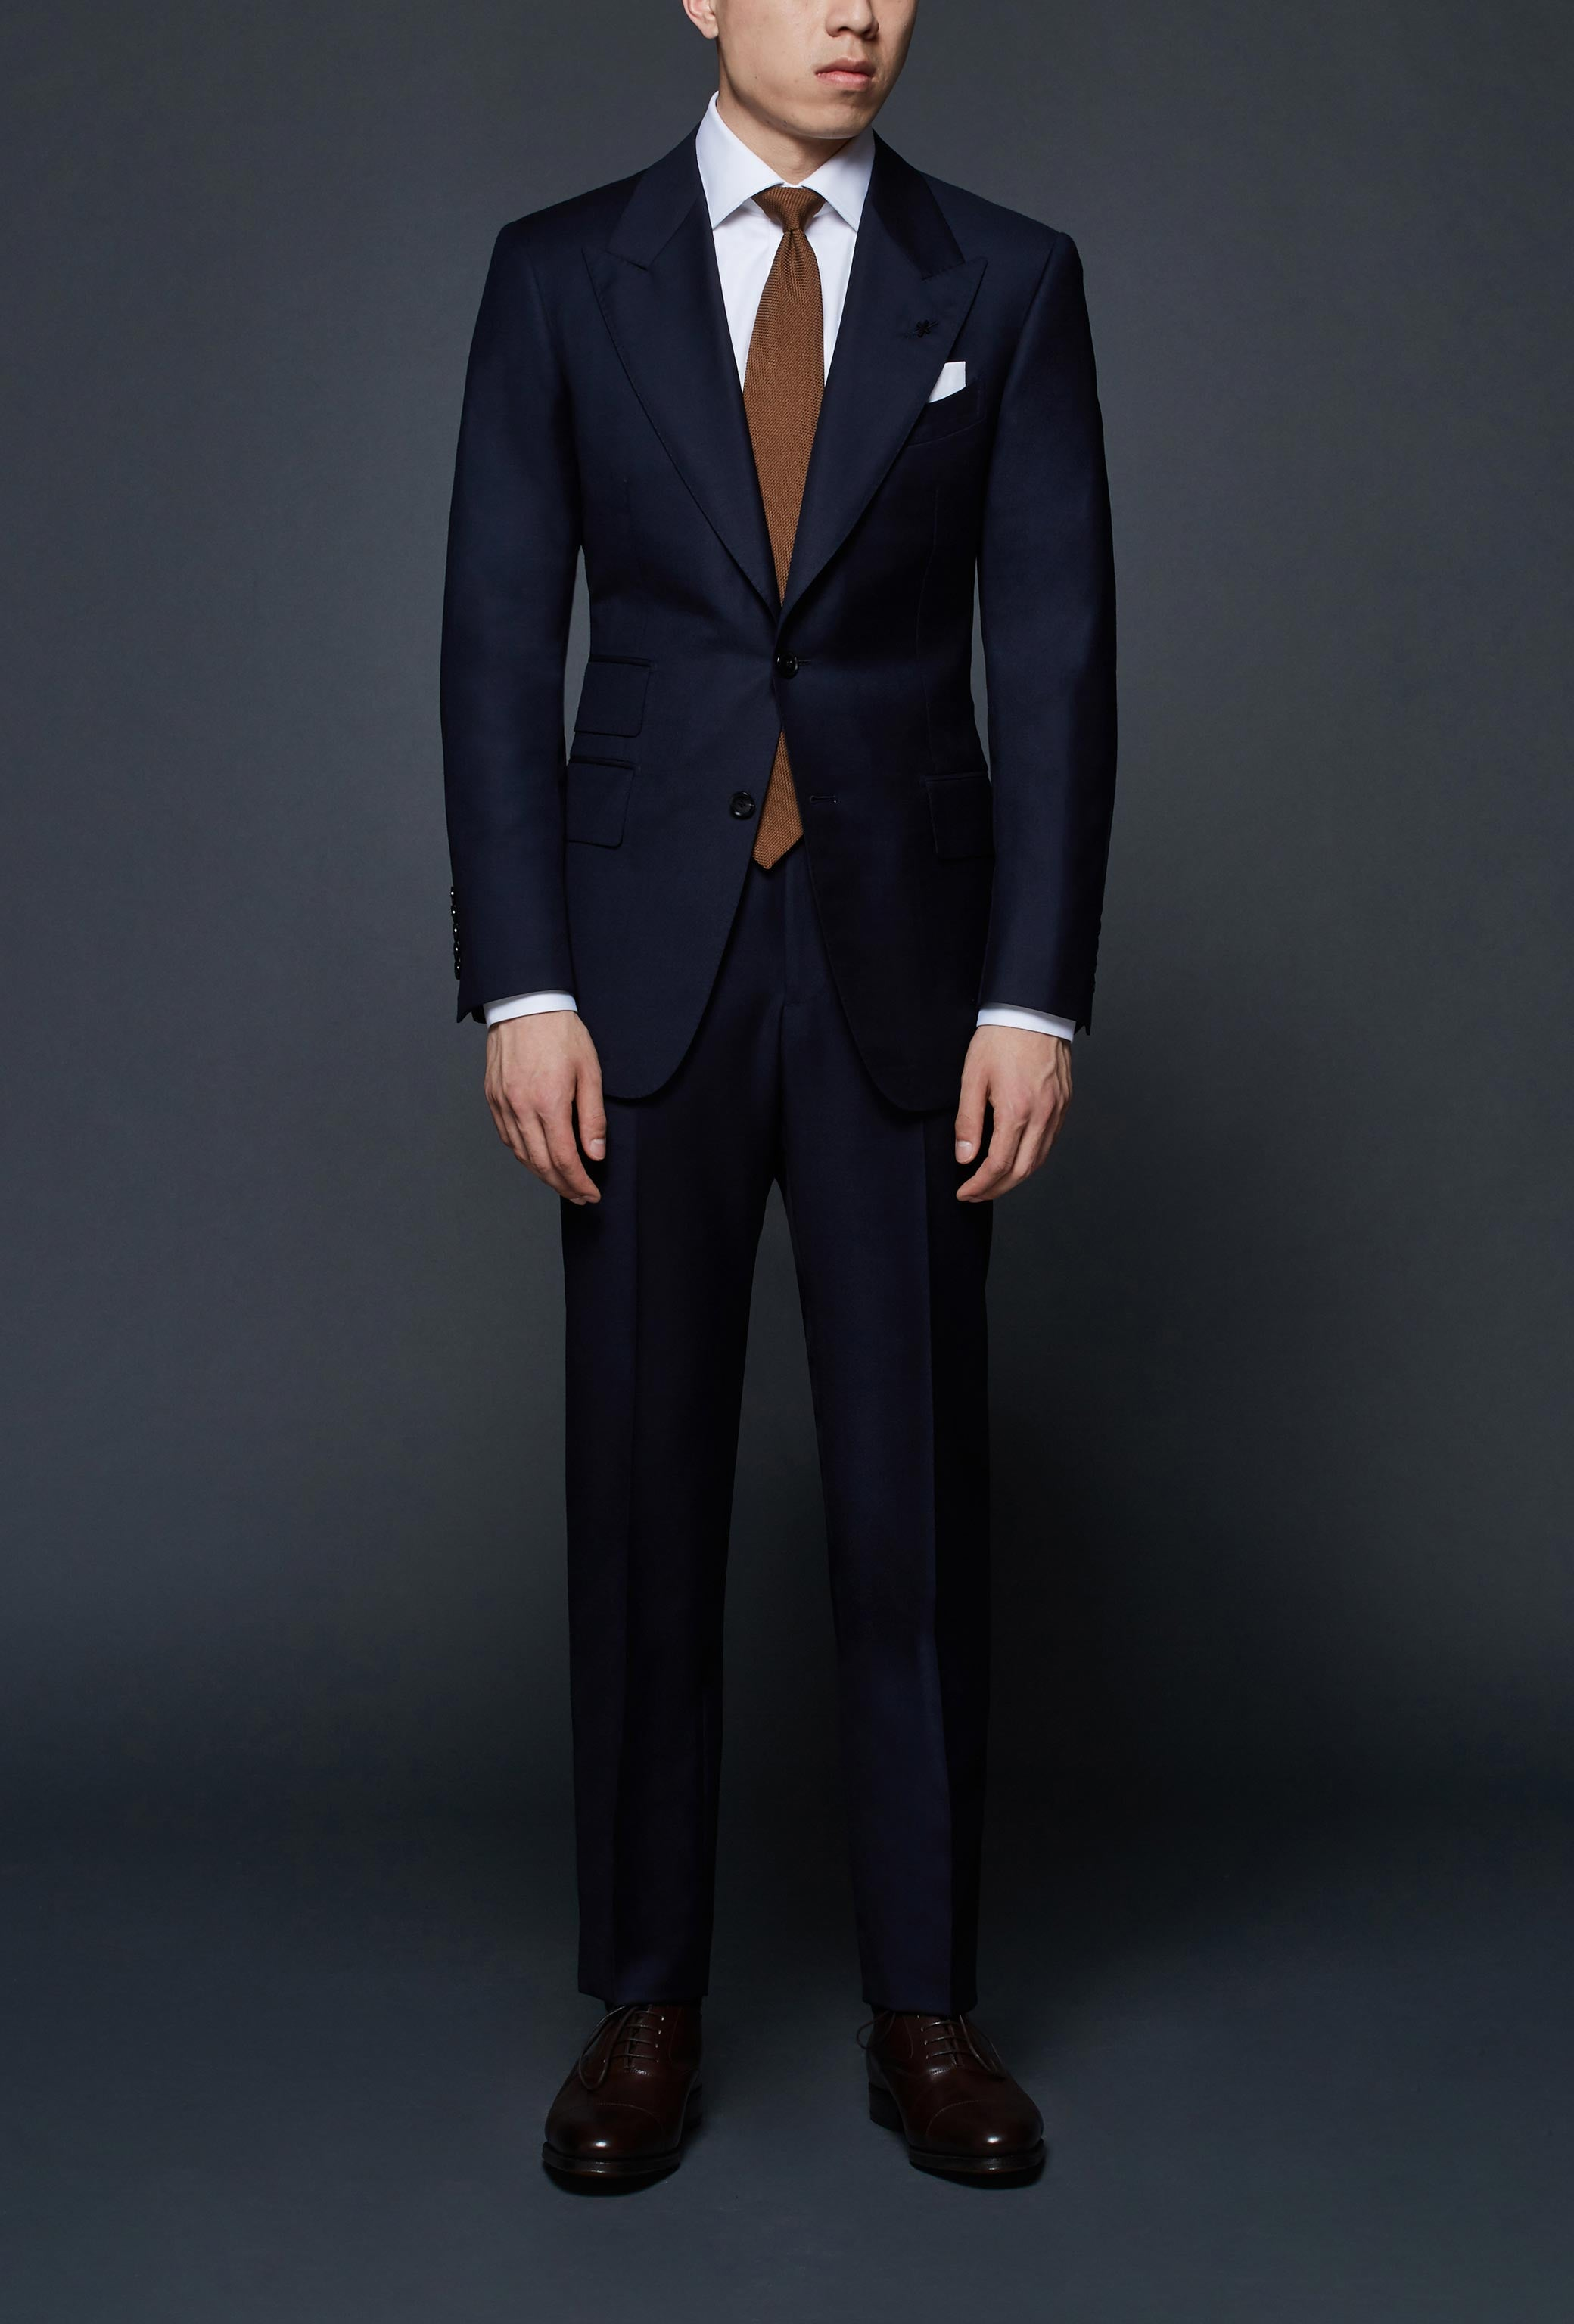 Classic Navy Peak Lapel Suit